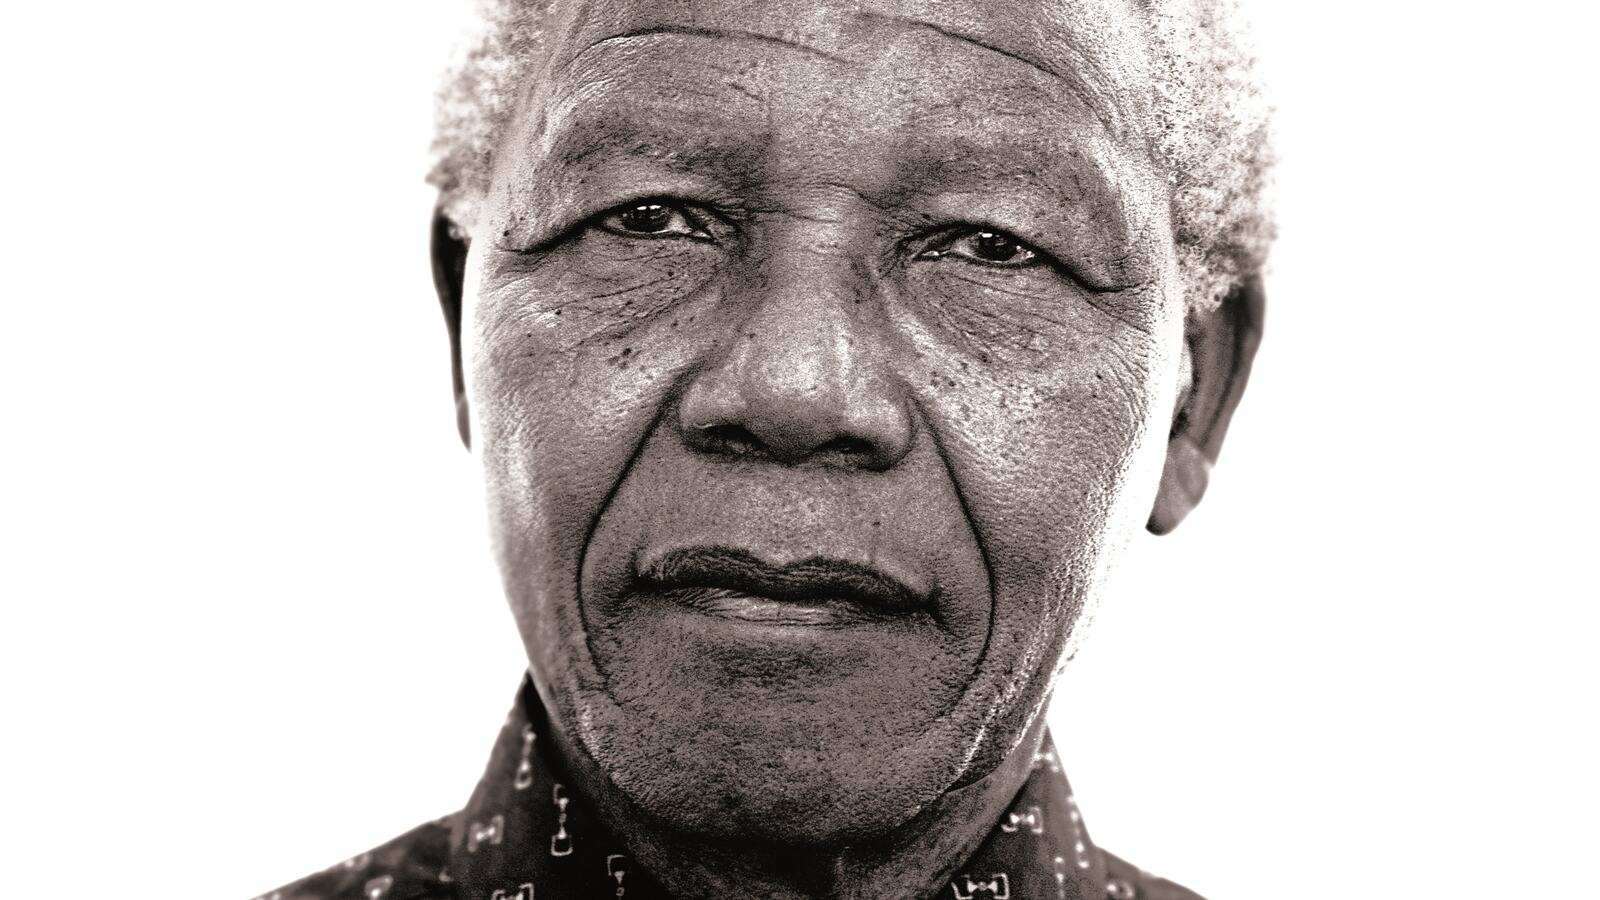 HIGHER FEES APPLY. Former South African President and ex-ANC leader Nelson Mandela...